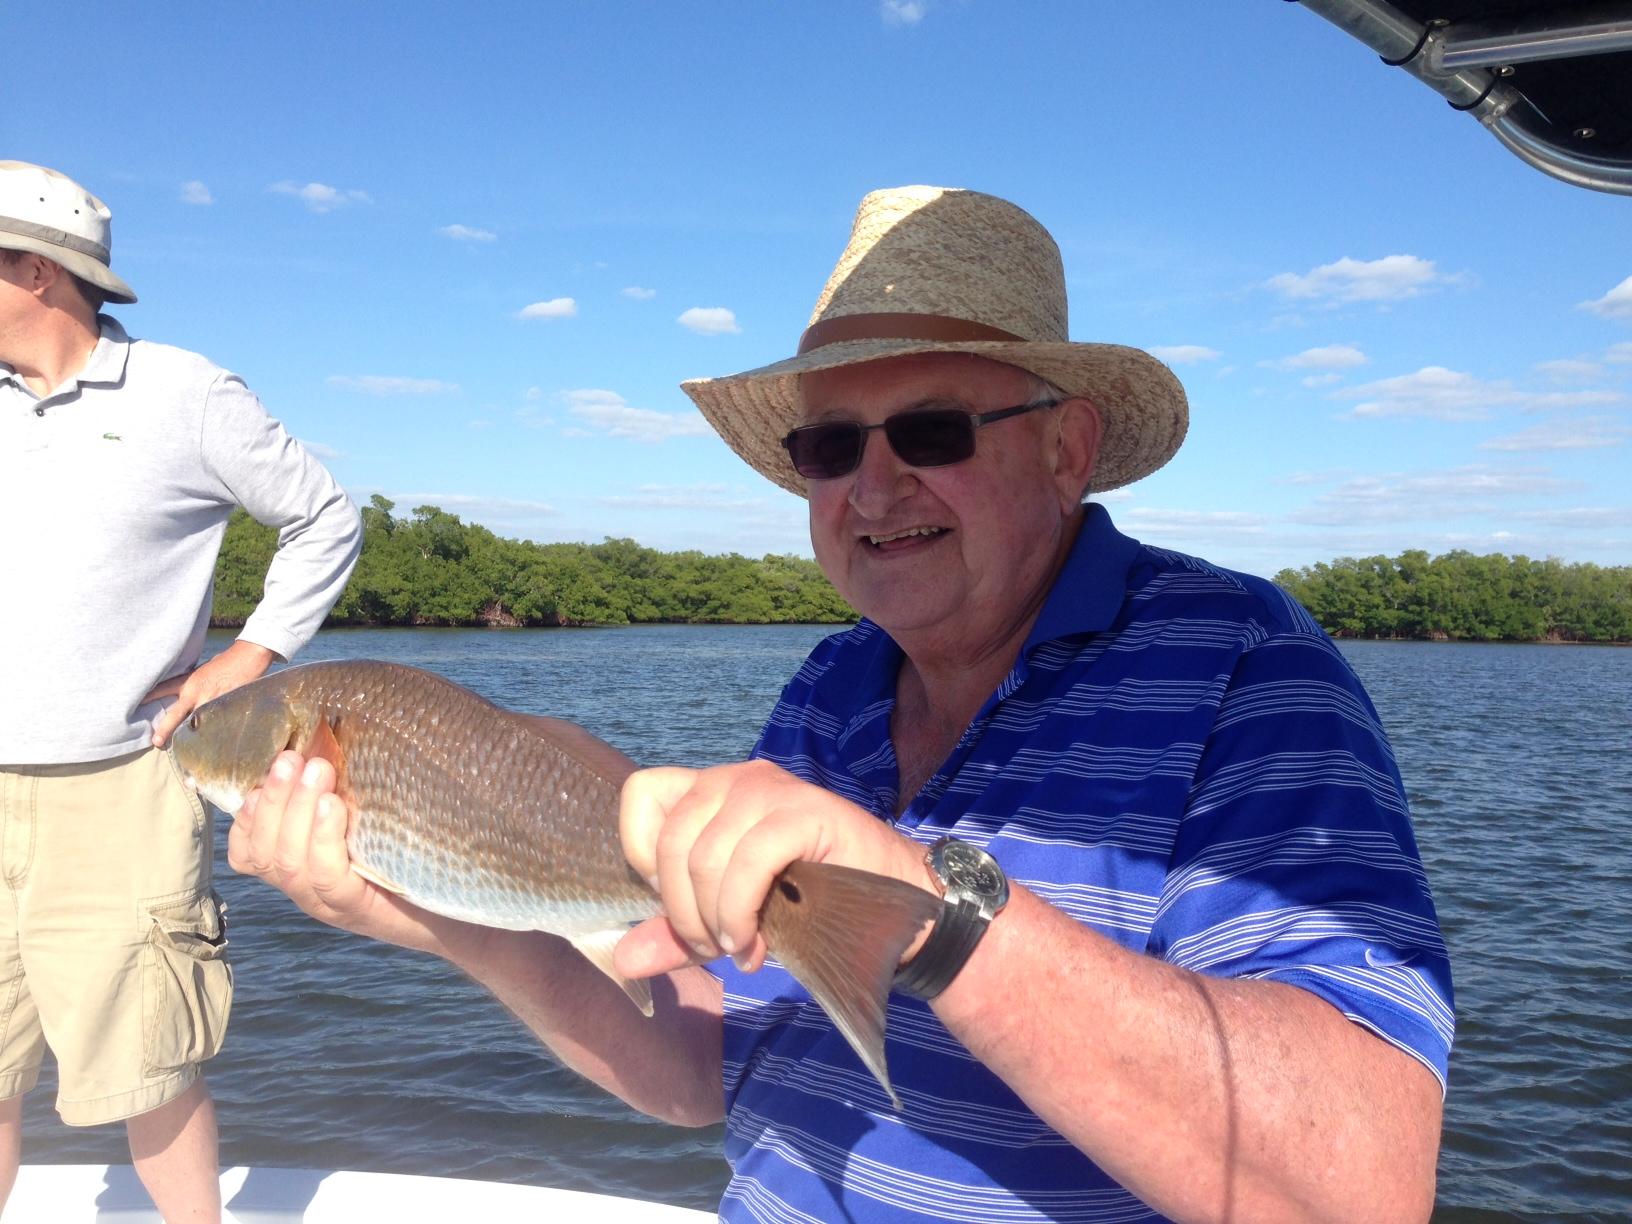 Fort myers fishing report 11 3 14 calusa fishing adventures for Ft myers fishing report